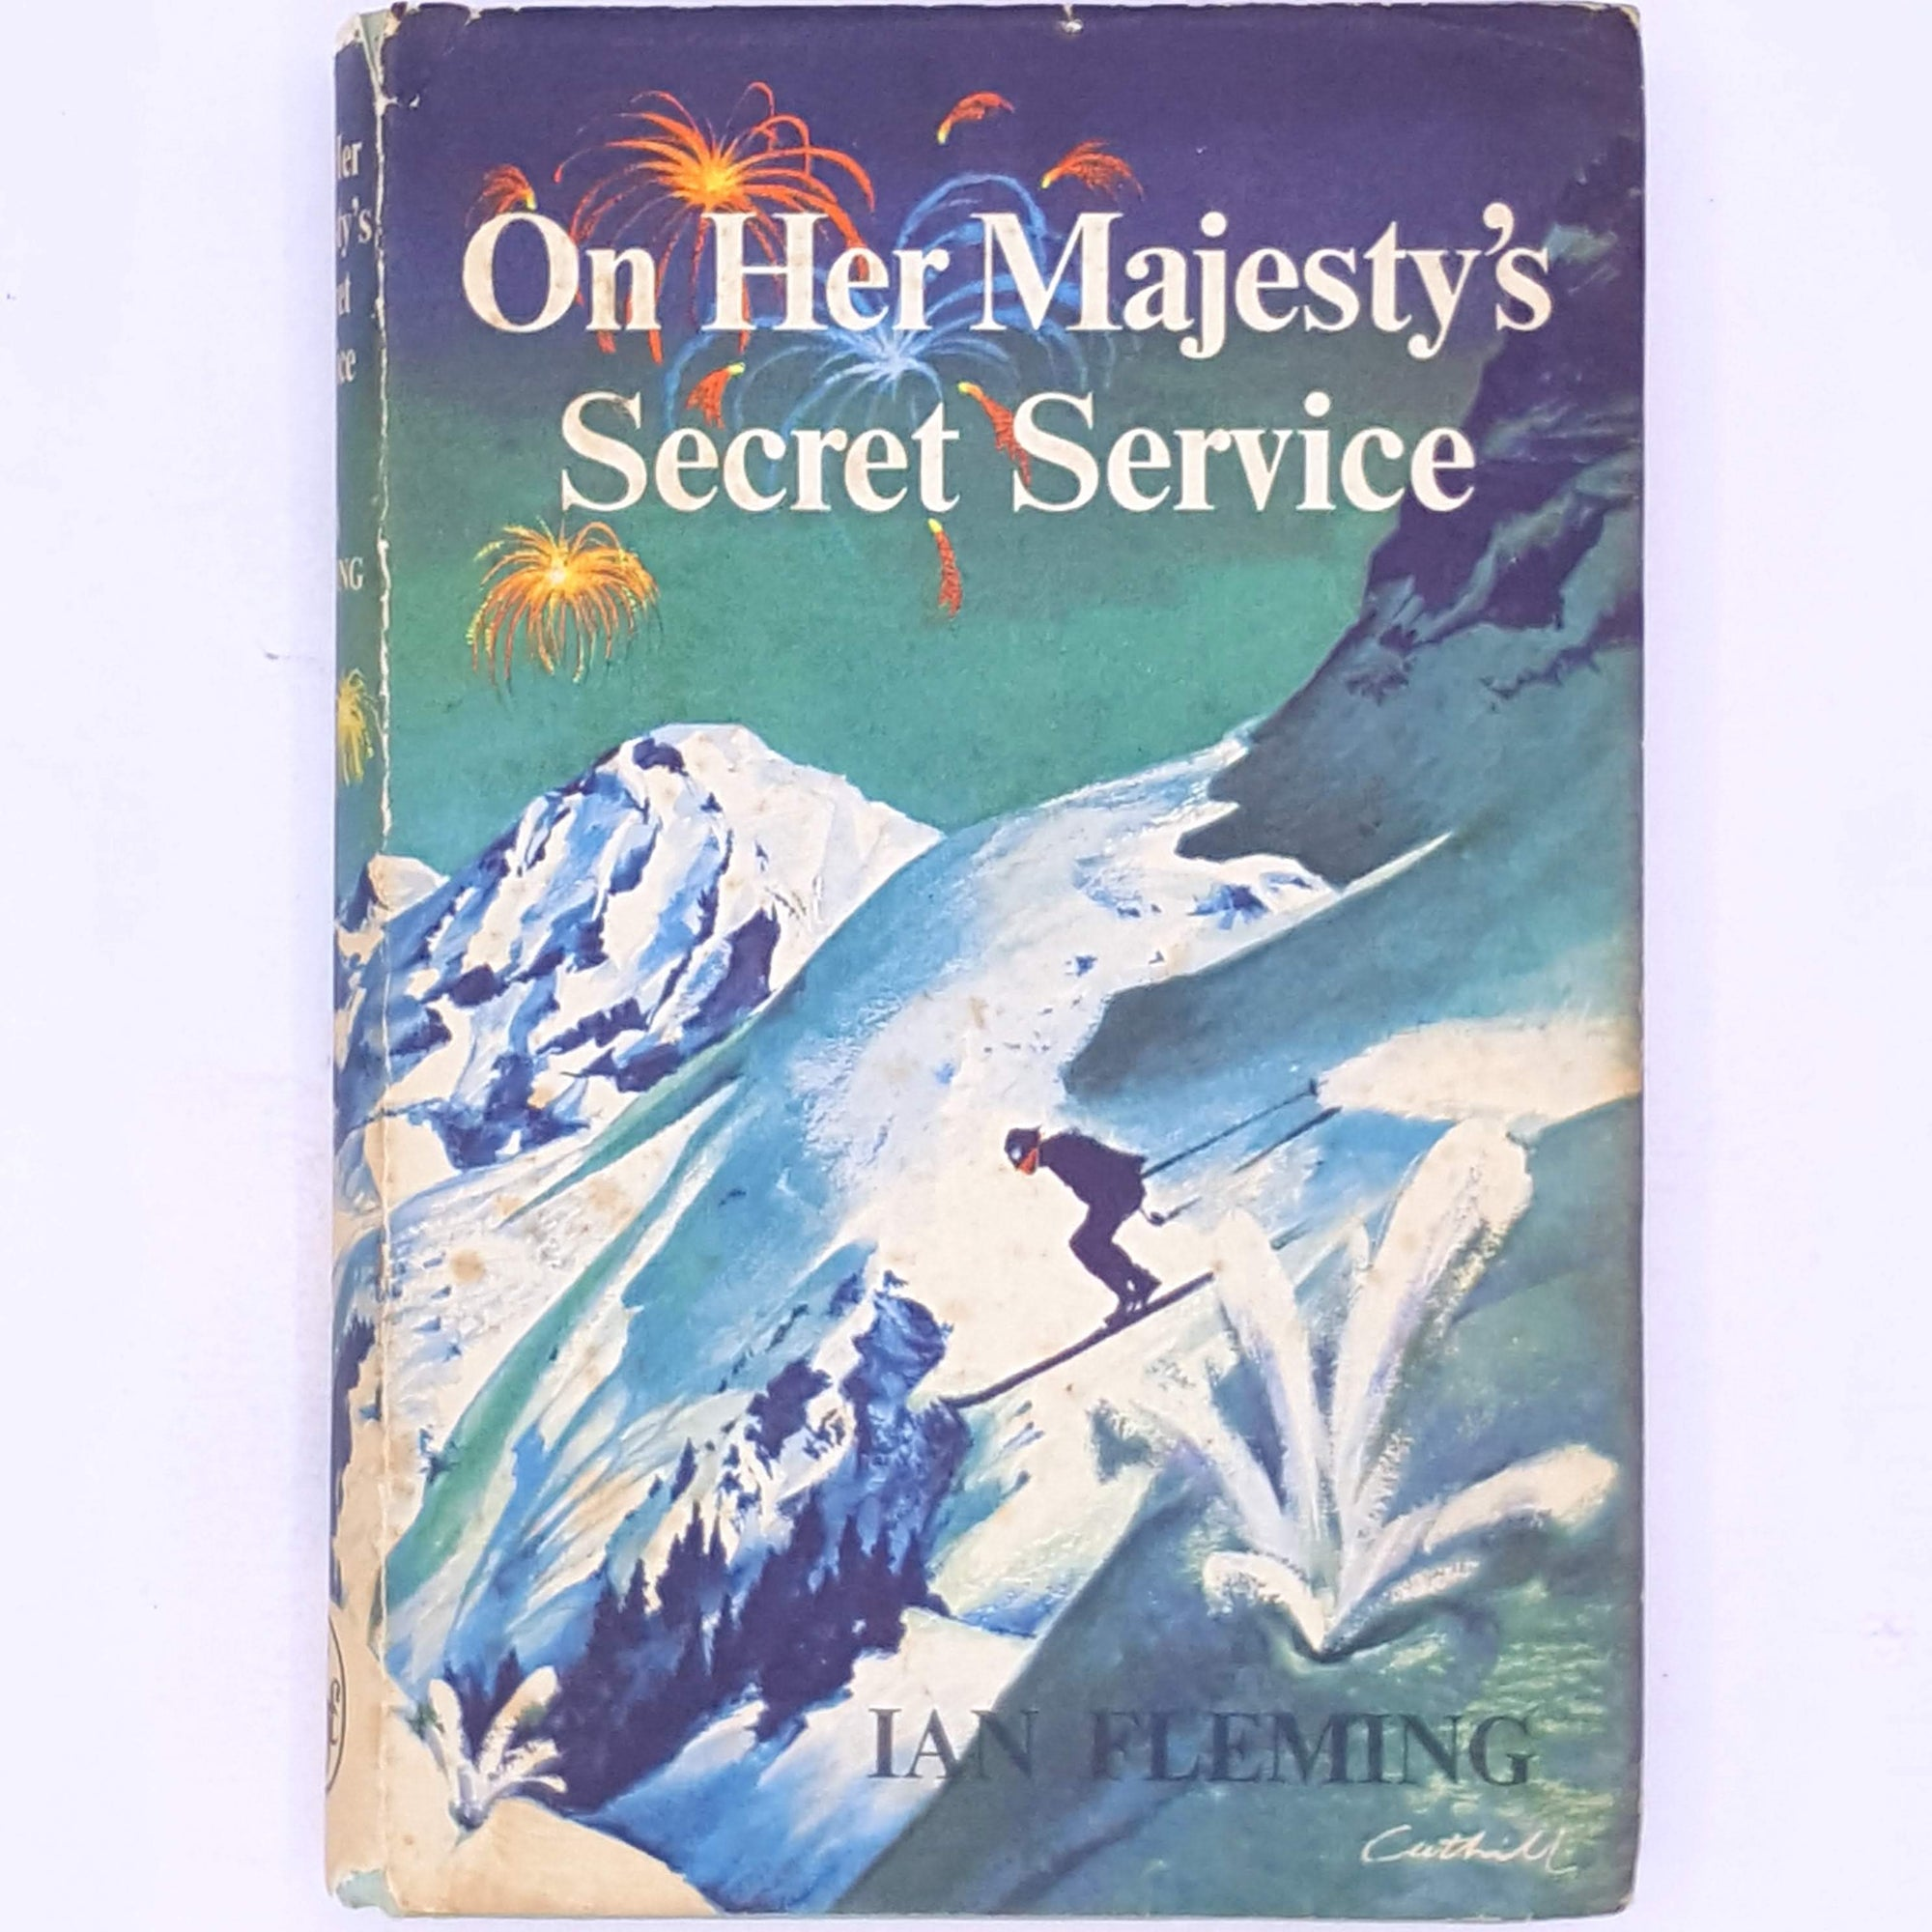 007, On Her Majesty's Secret Service by Ian Fleming